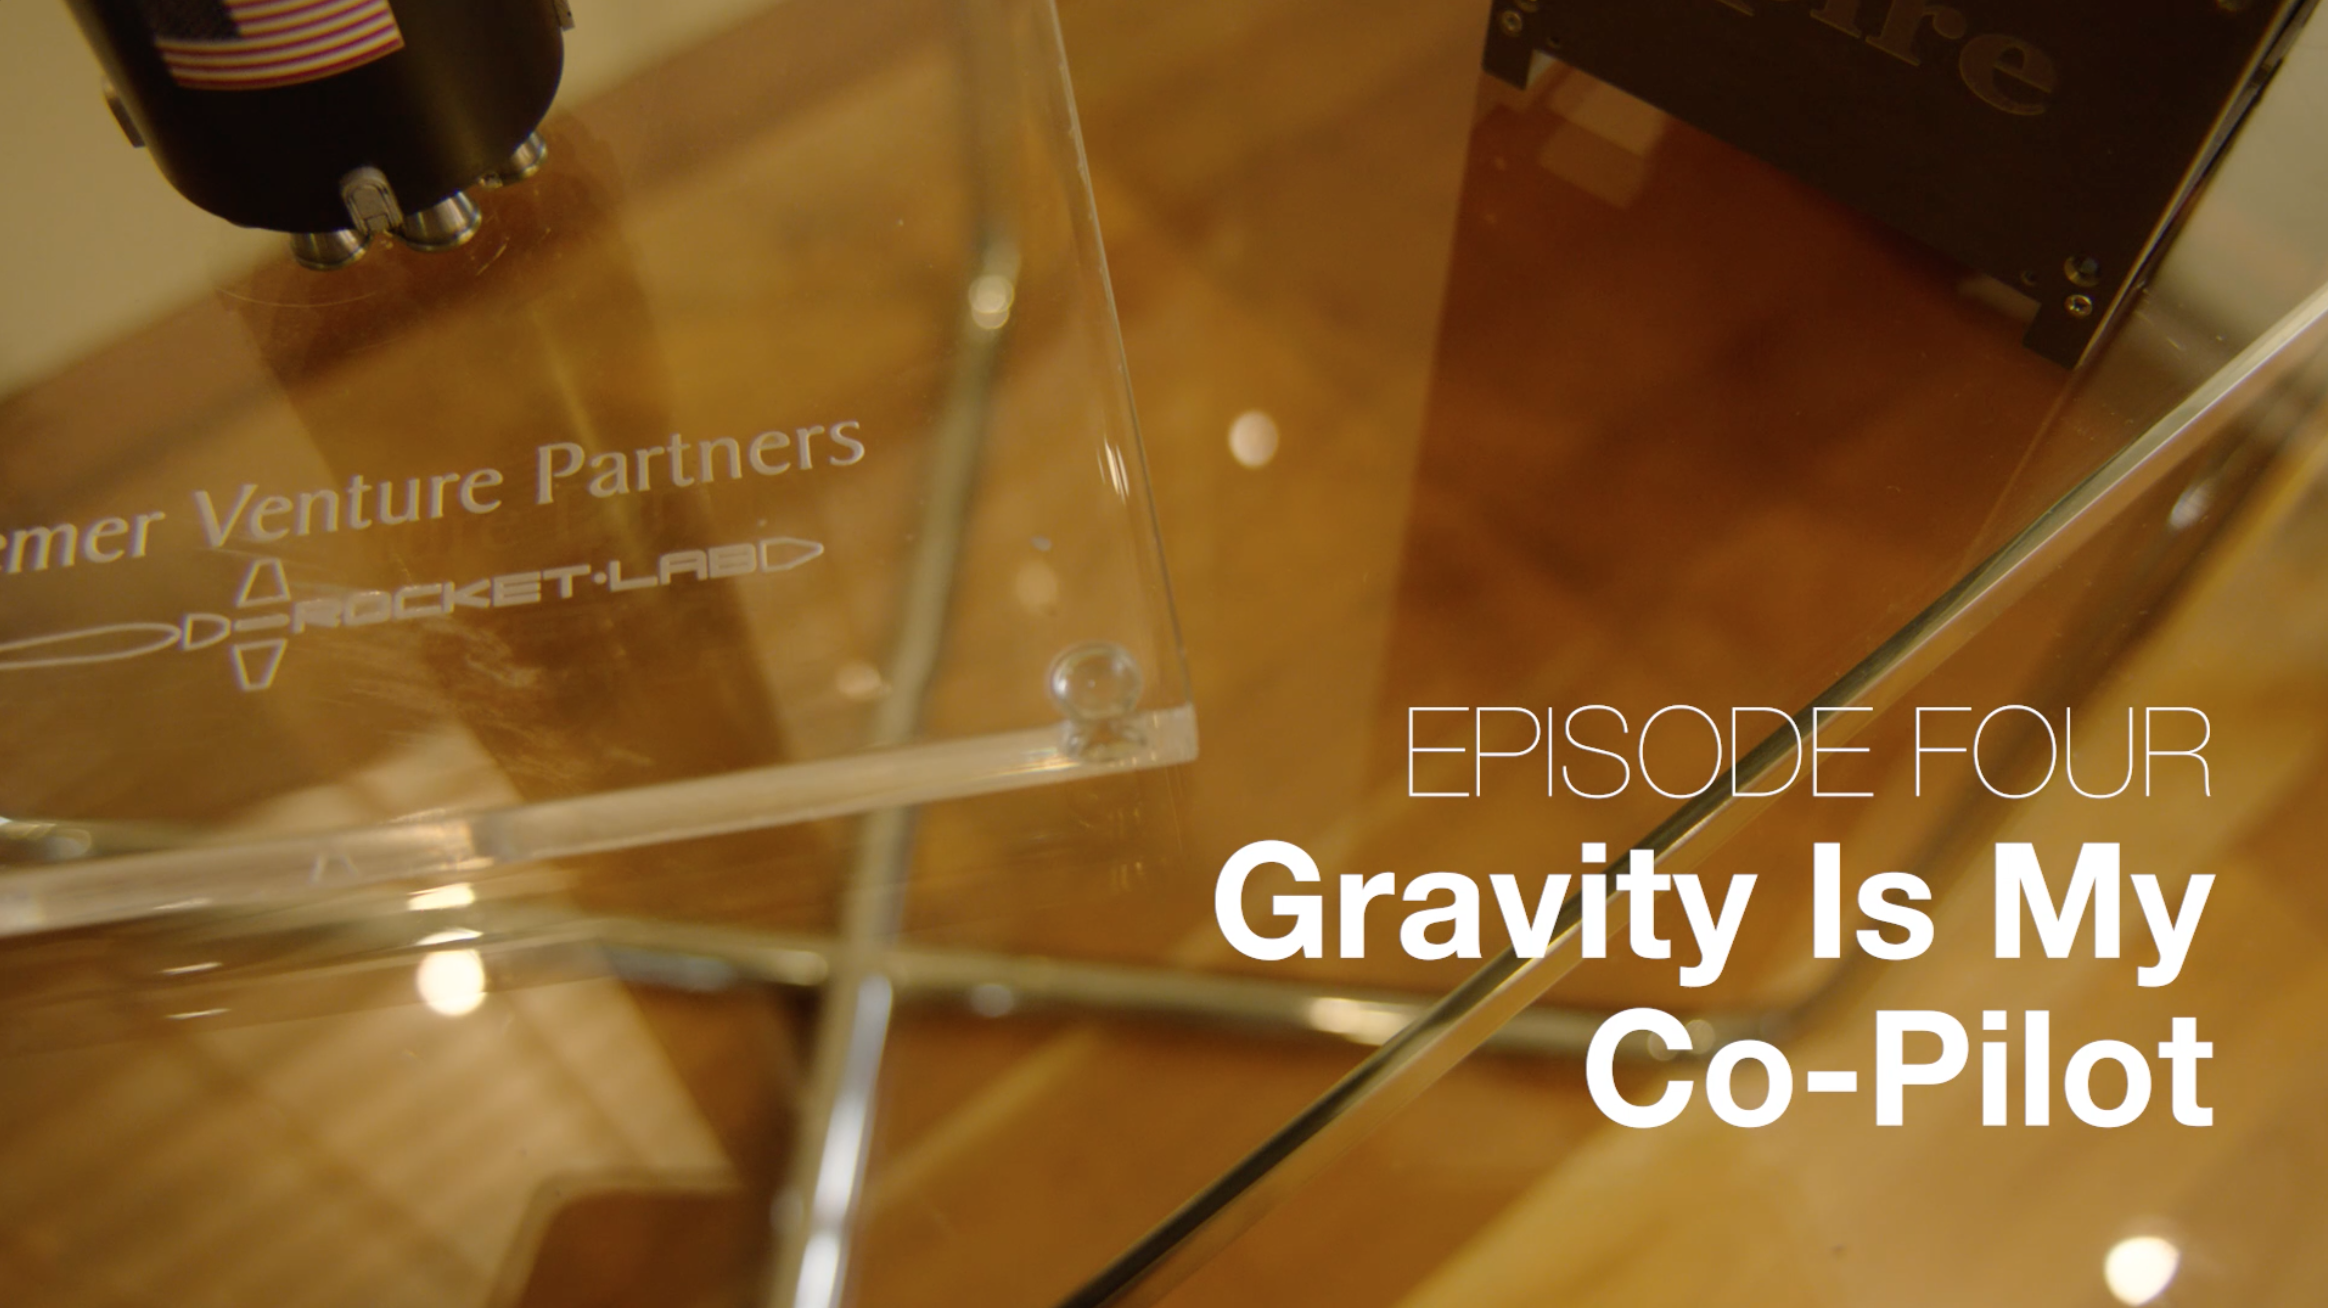 Ep 04 - Gravity Is My Co-Pilot   Bubbleproof